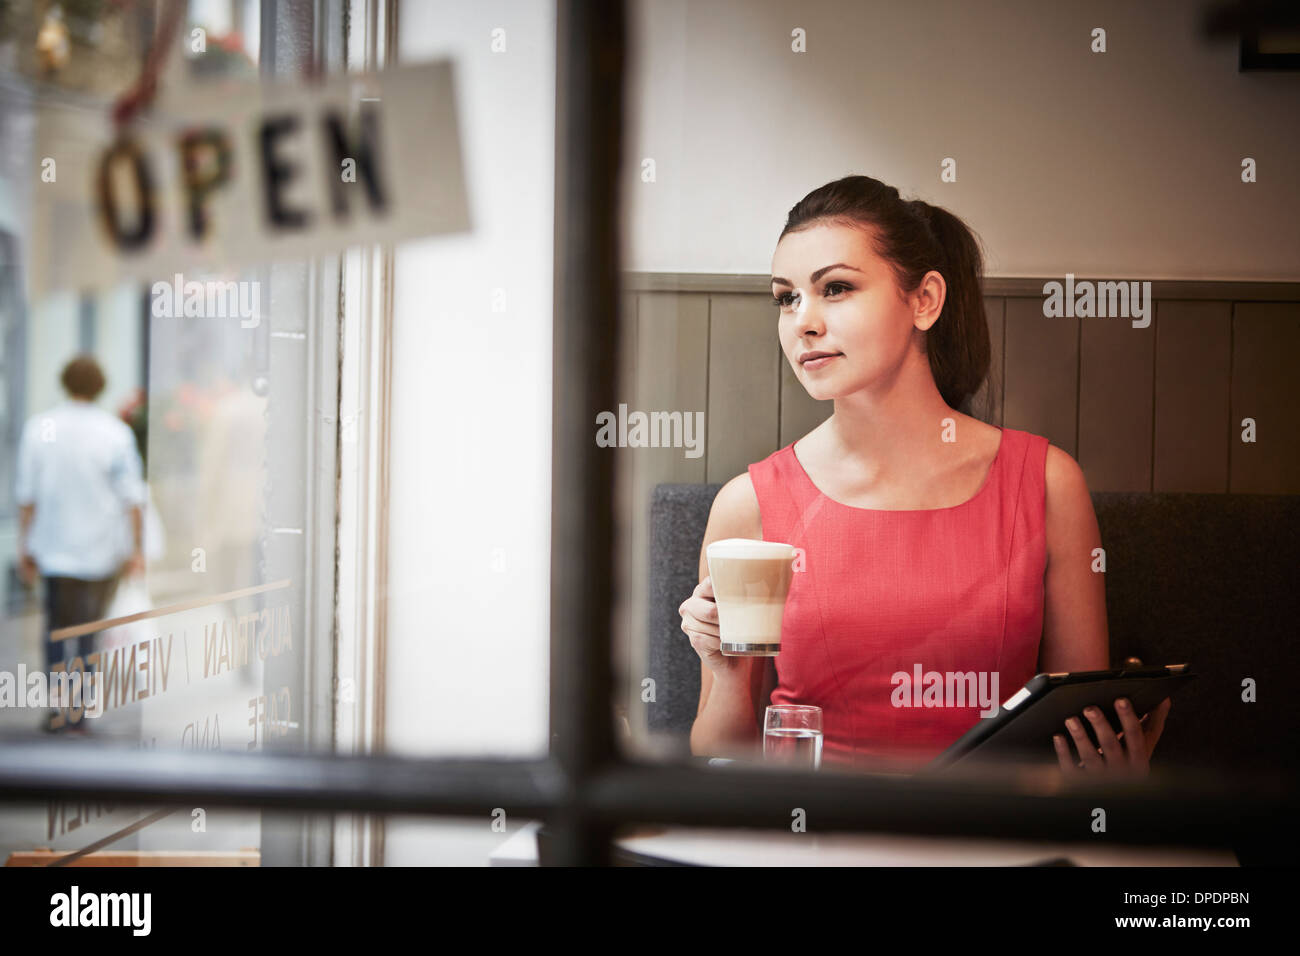 Young woman sitting in cafe with digital tablet and hot drink - Stock Image